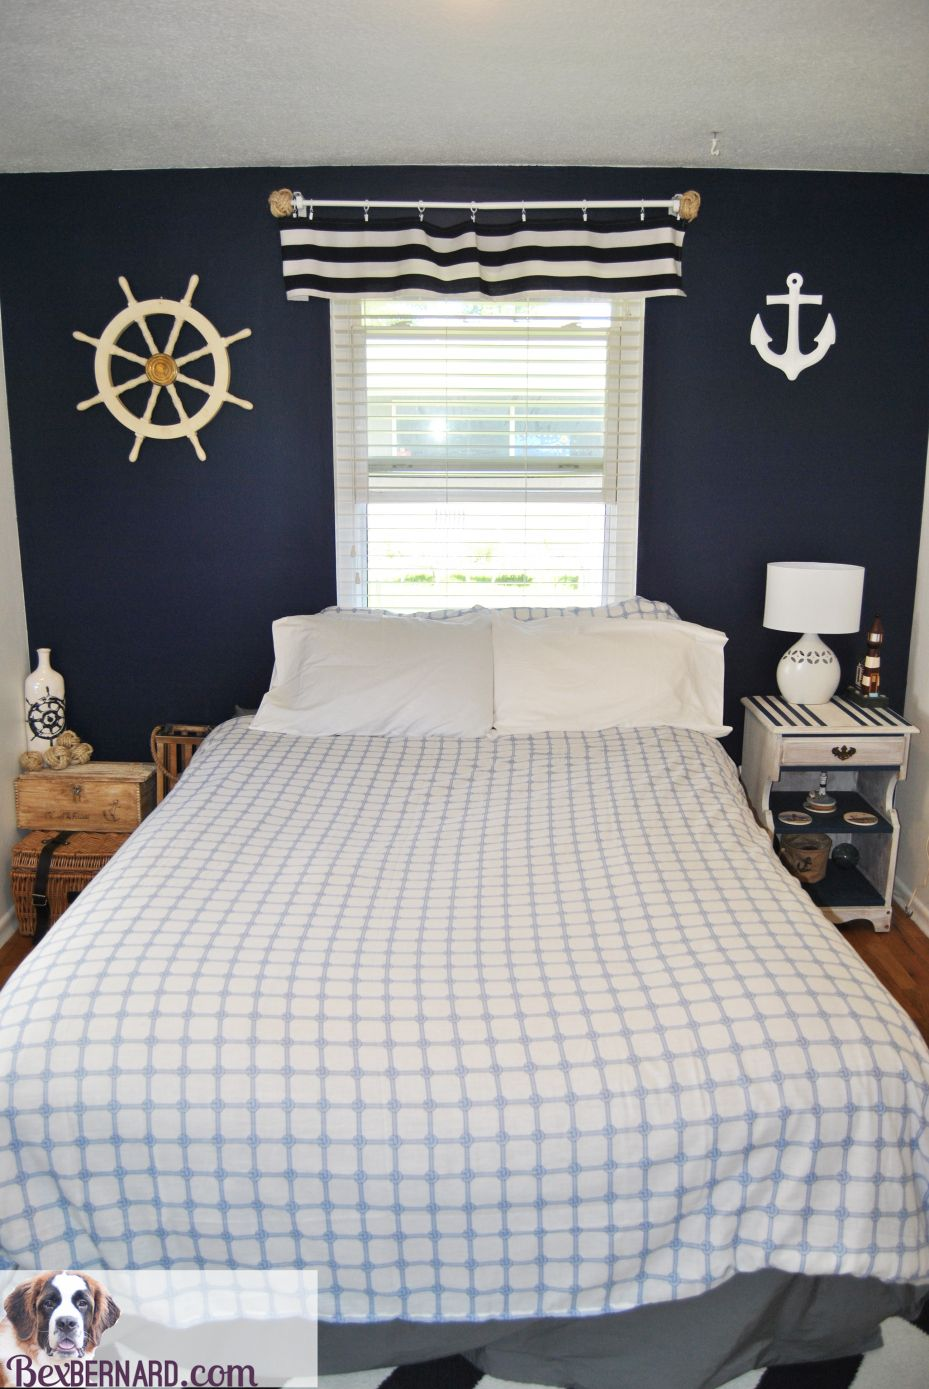 99+ Anchor Bedroom Decor Interior Paint Color Ideas Check More At Http:/